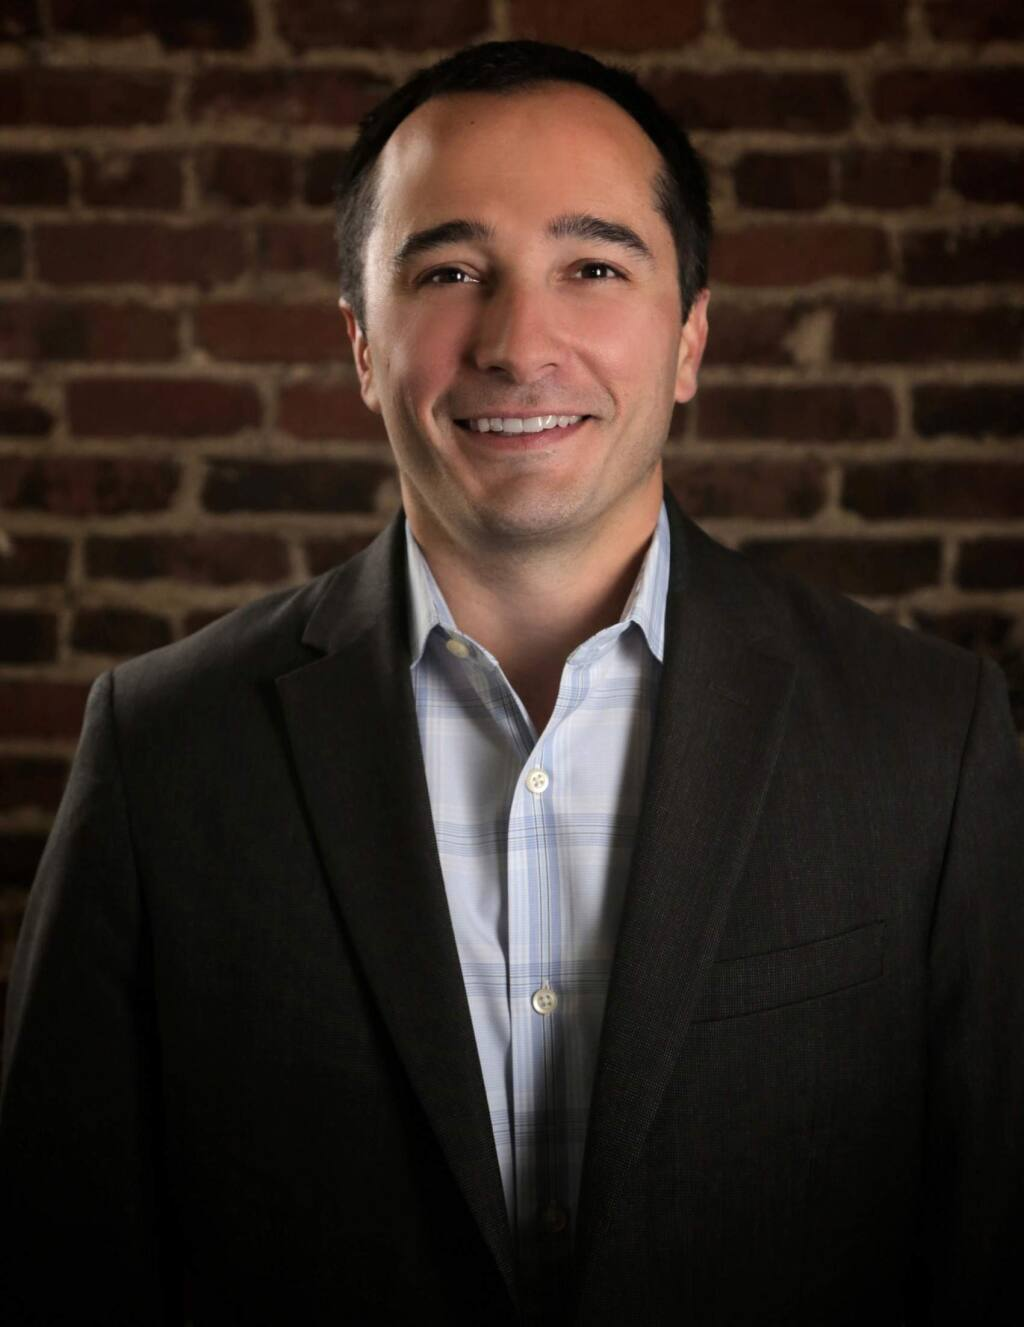 Ross Guehring, 38, partner in Lighthouse Public Affairs in San Rafael, is one of North Bay Business Journal's Forty Under 40 notable young professionals for 2019. (PROVIDED PHOTO)